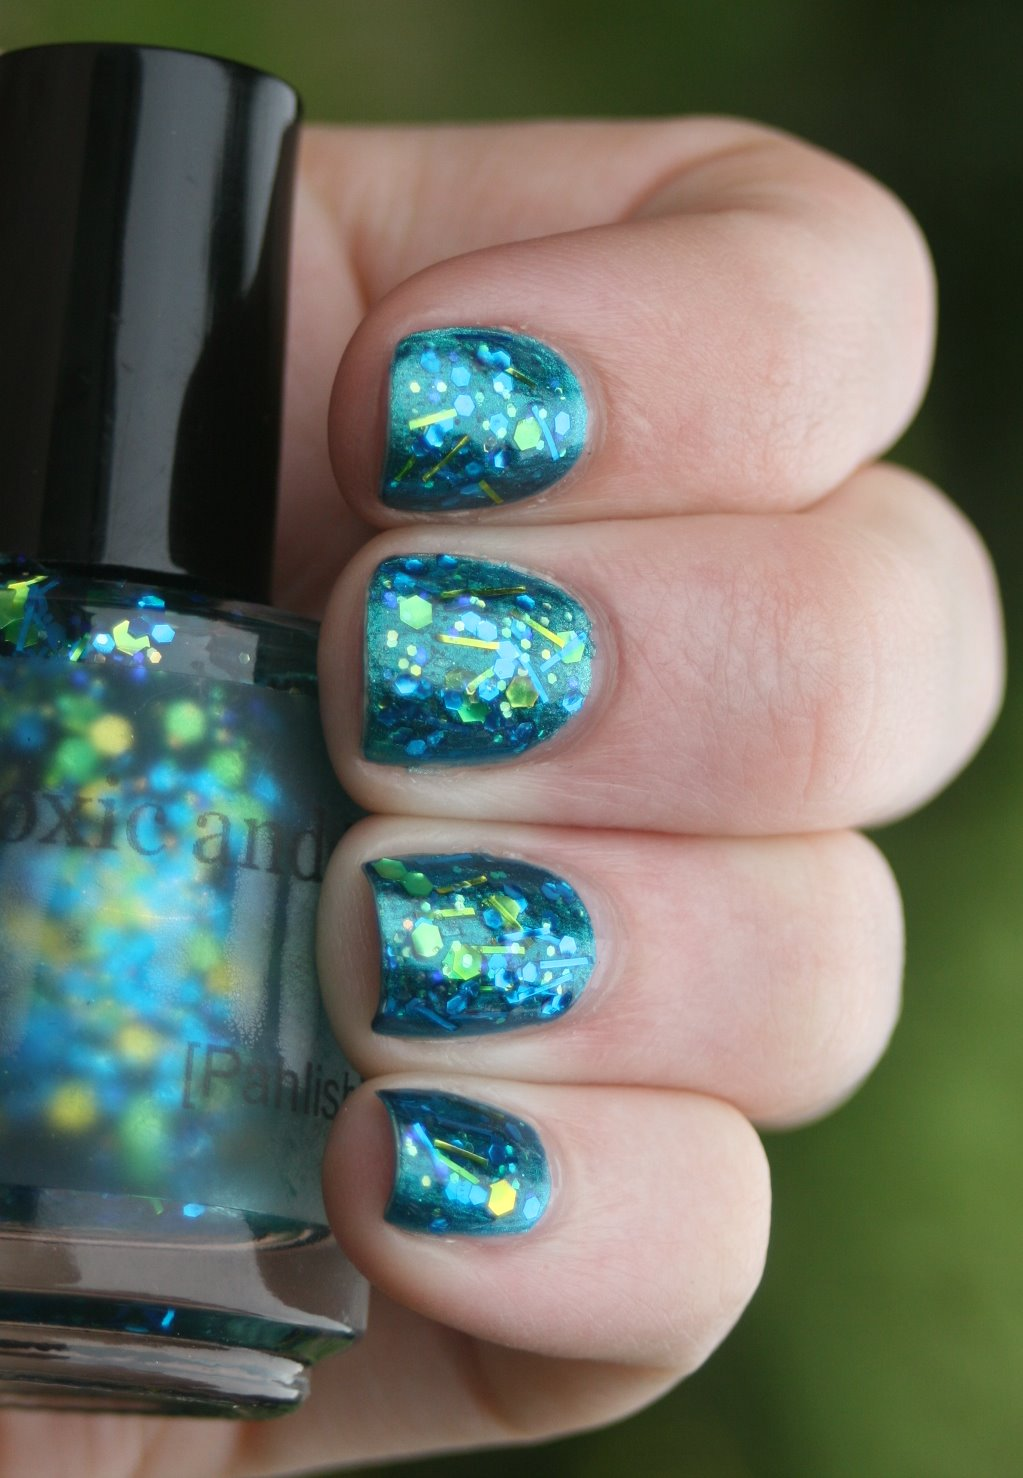 Pahlish Toxic & Timeless over China Glaze Deviantly Daring swatch